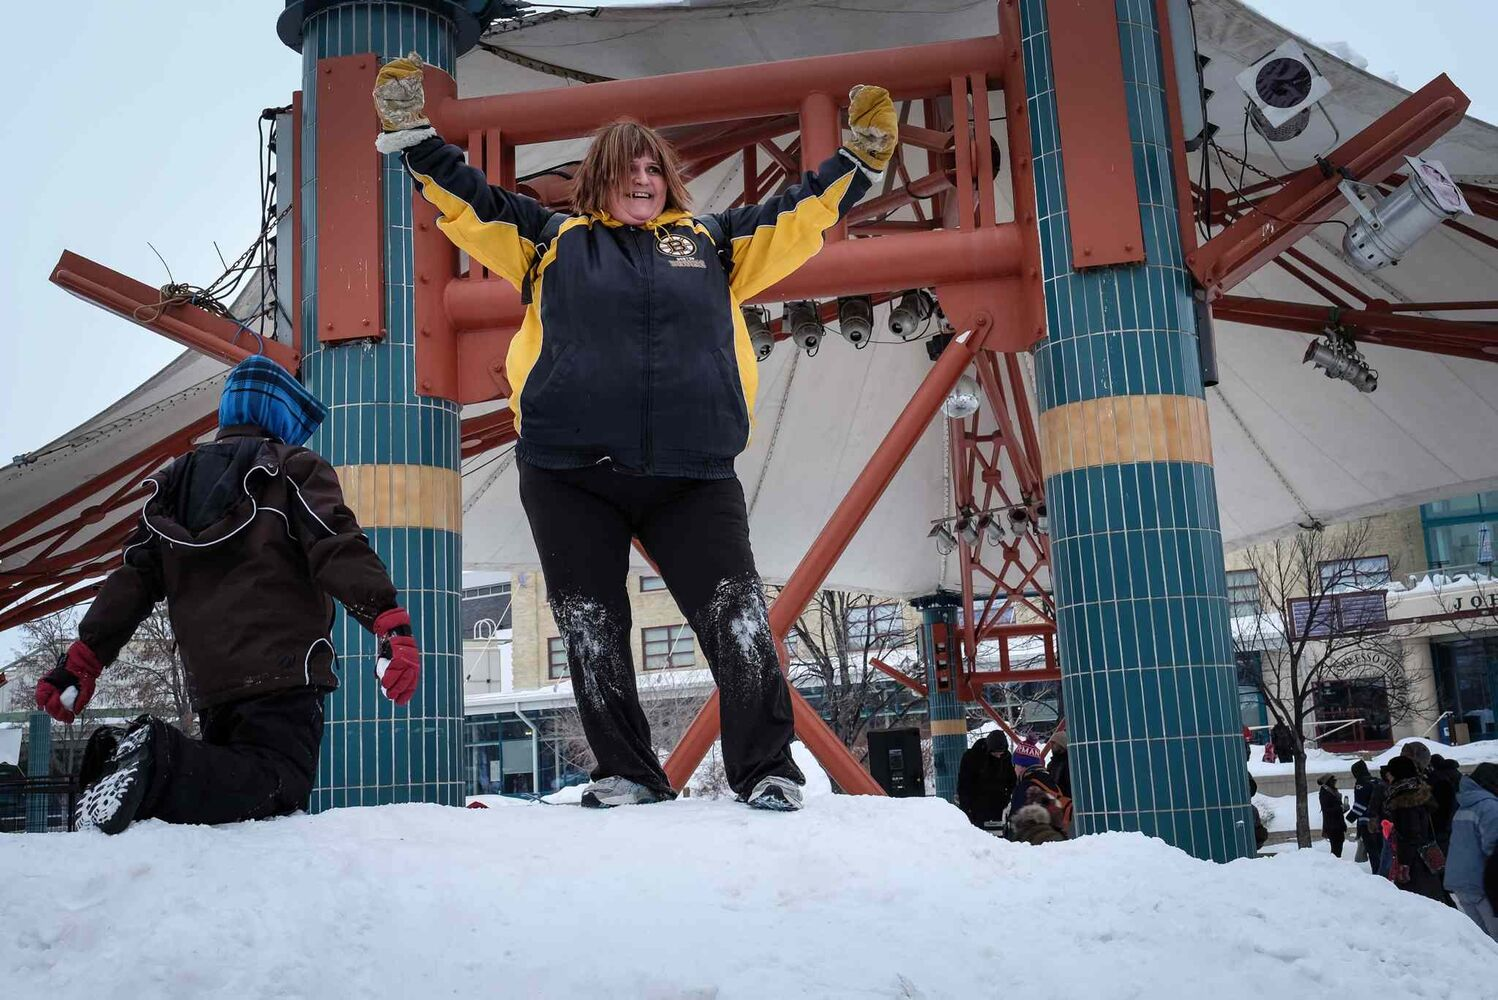 Tom jokingly bet Cathy she couldn't climb the large pile of snow by the skating rink at The Forks. MIKE DEAL / WINNIPEG FREE PRESS